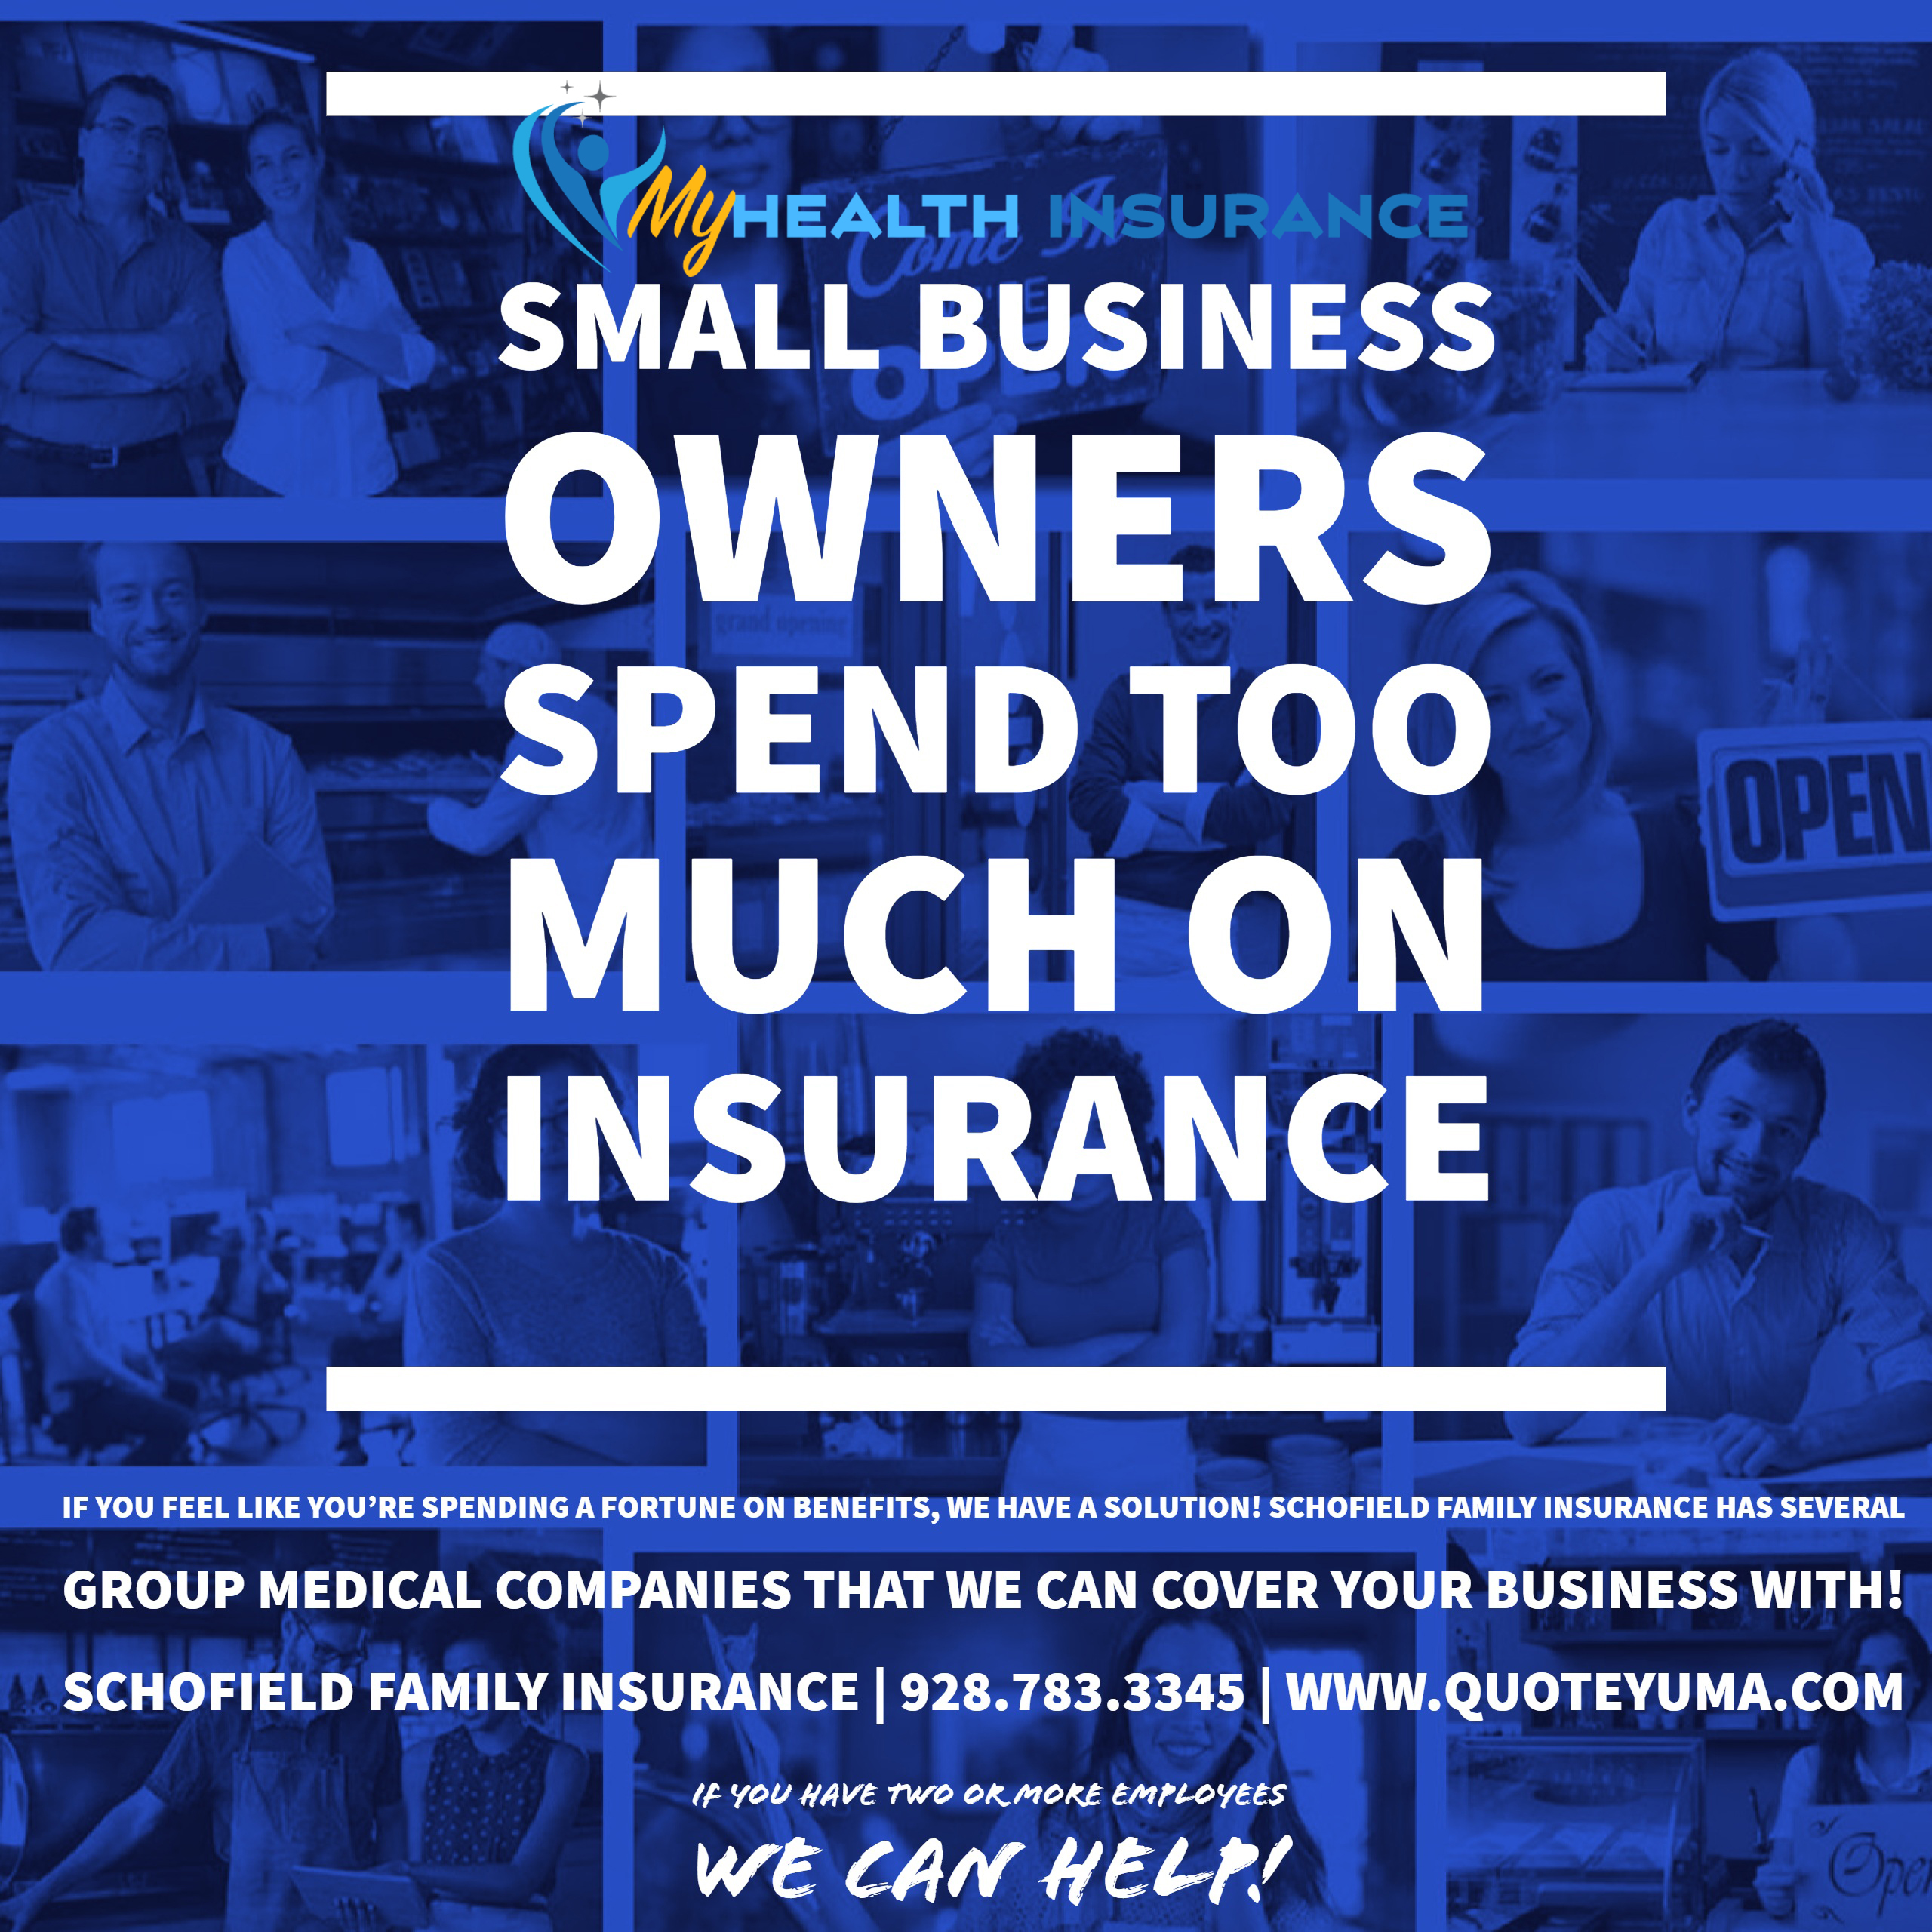 Schofield Family Insurance Small business owners press flyer 1